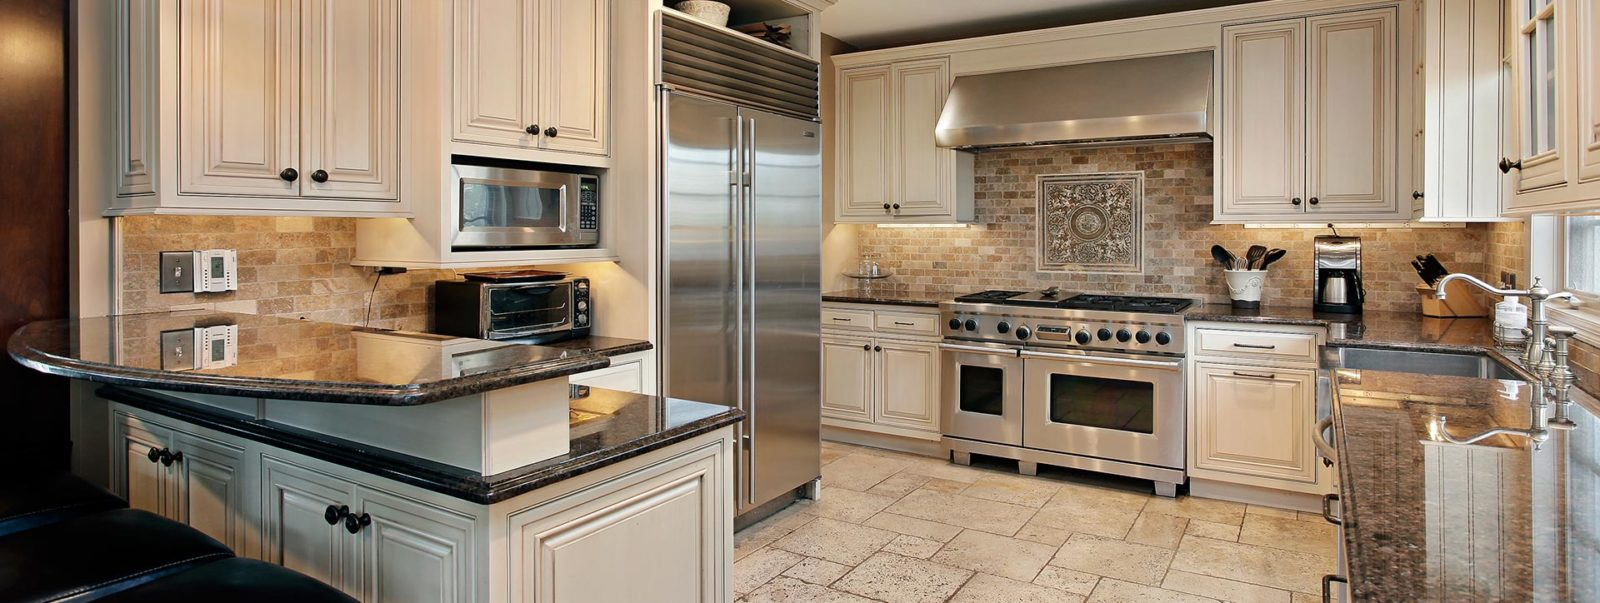 Custom Kitchen Cabinets in Boulder City NV, Henderson NV, Las Vegas